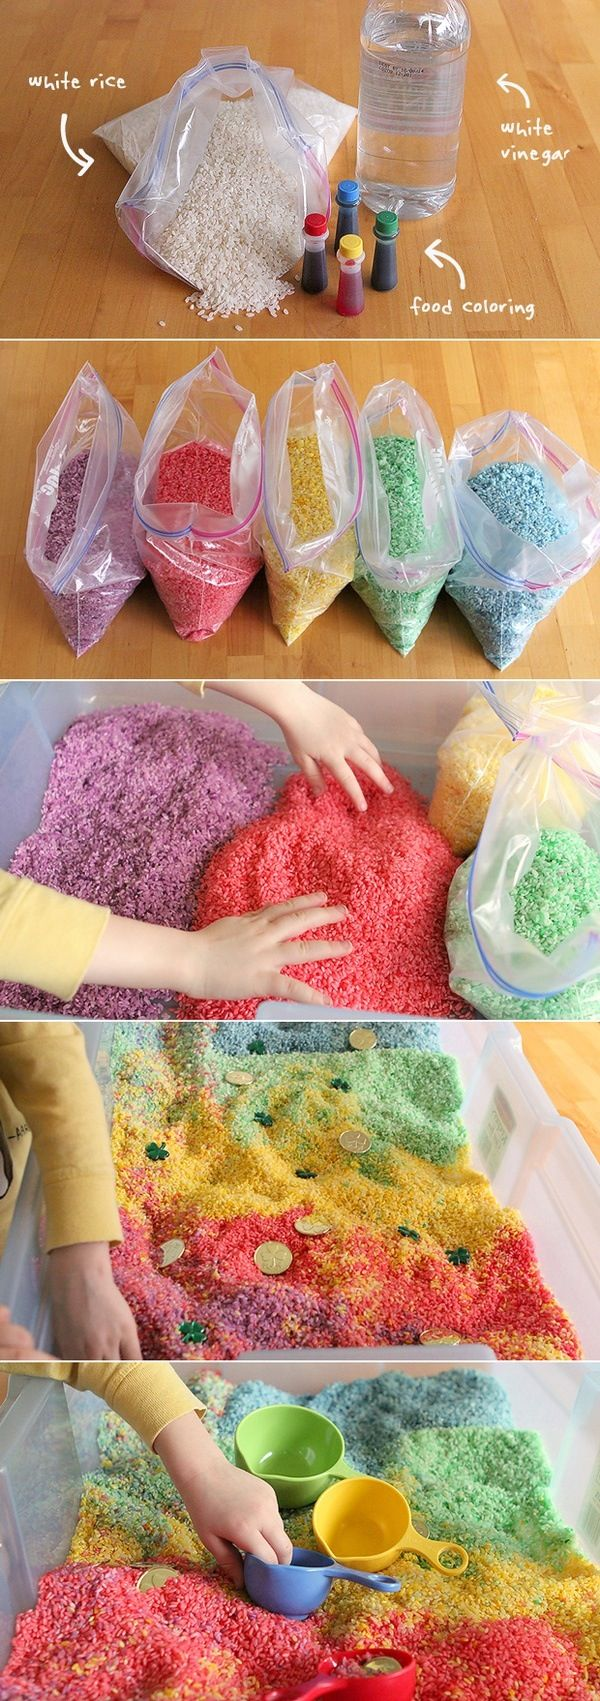 Sensory Bin colored rice is tactile and visual